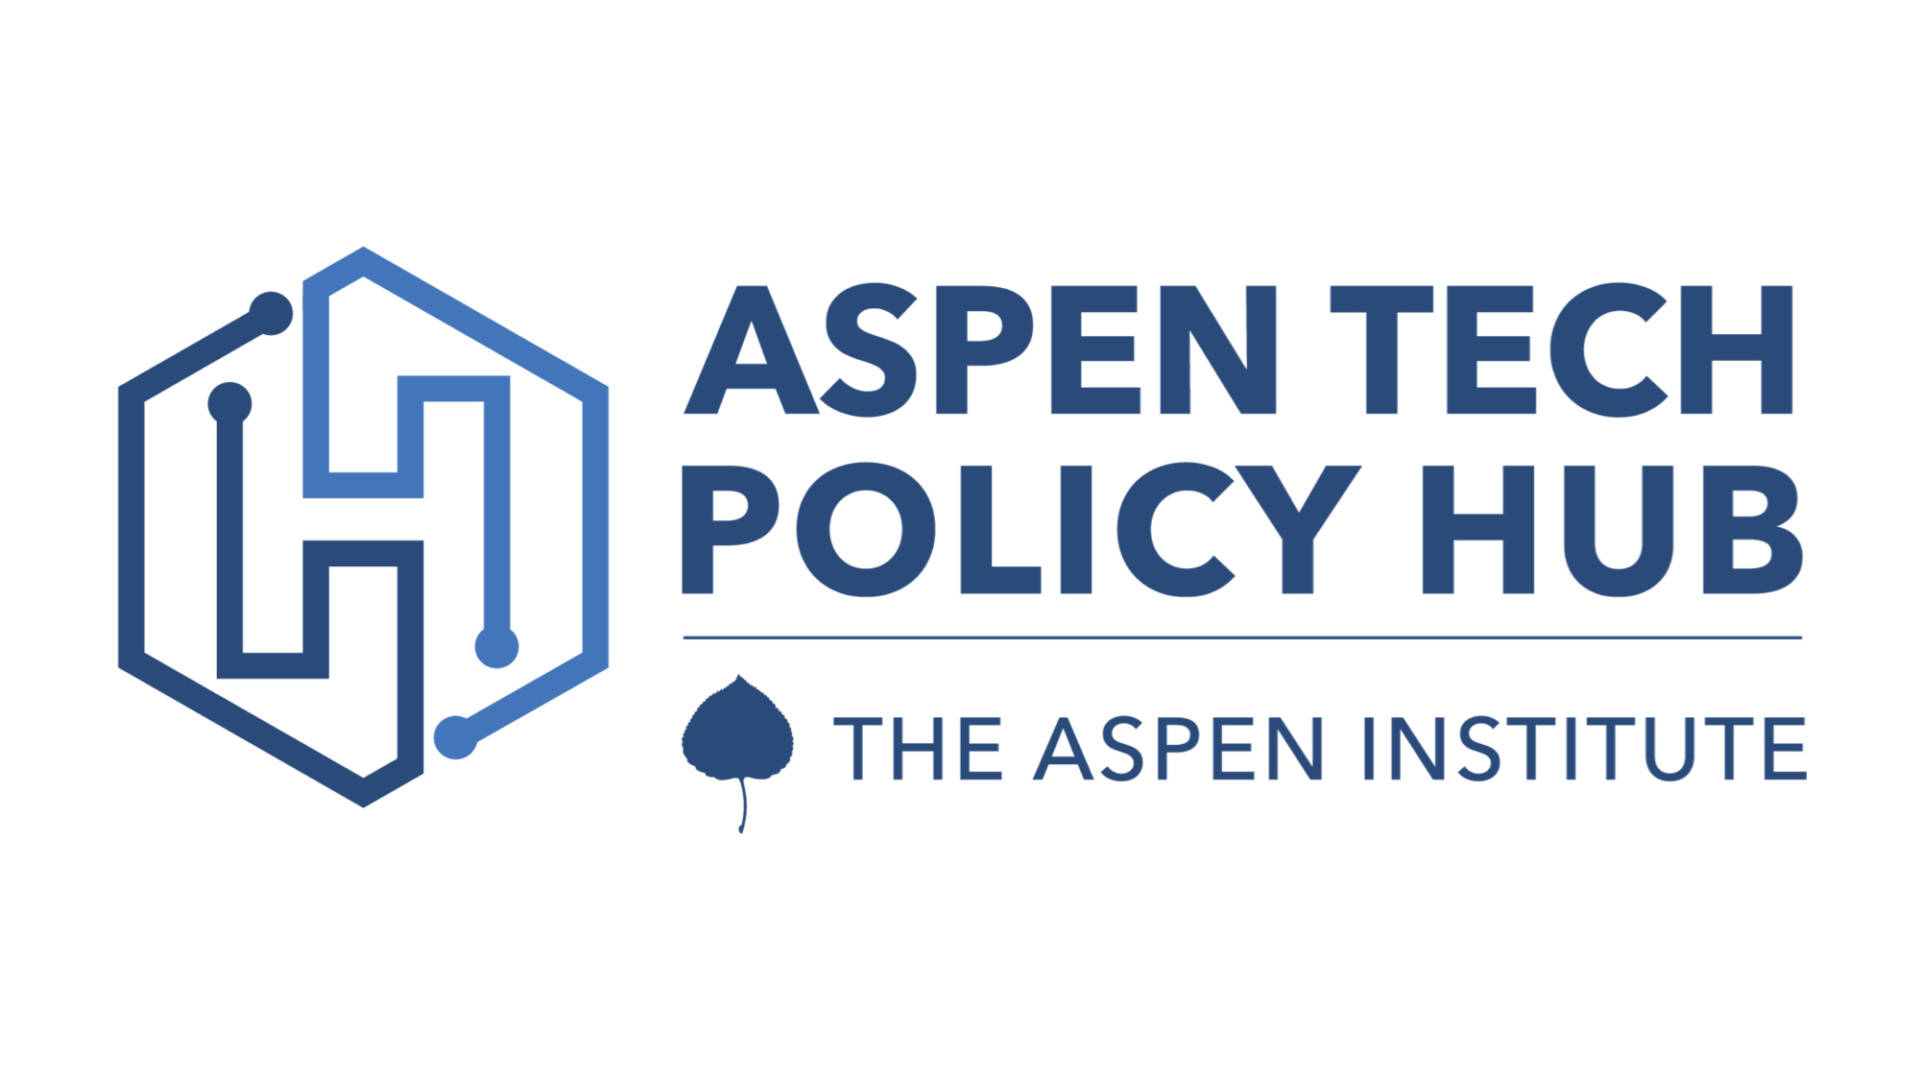 Aspen Tech Policy Hub Press Release - Card Image